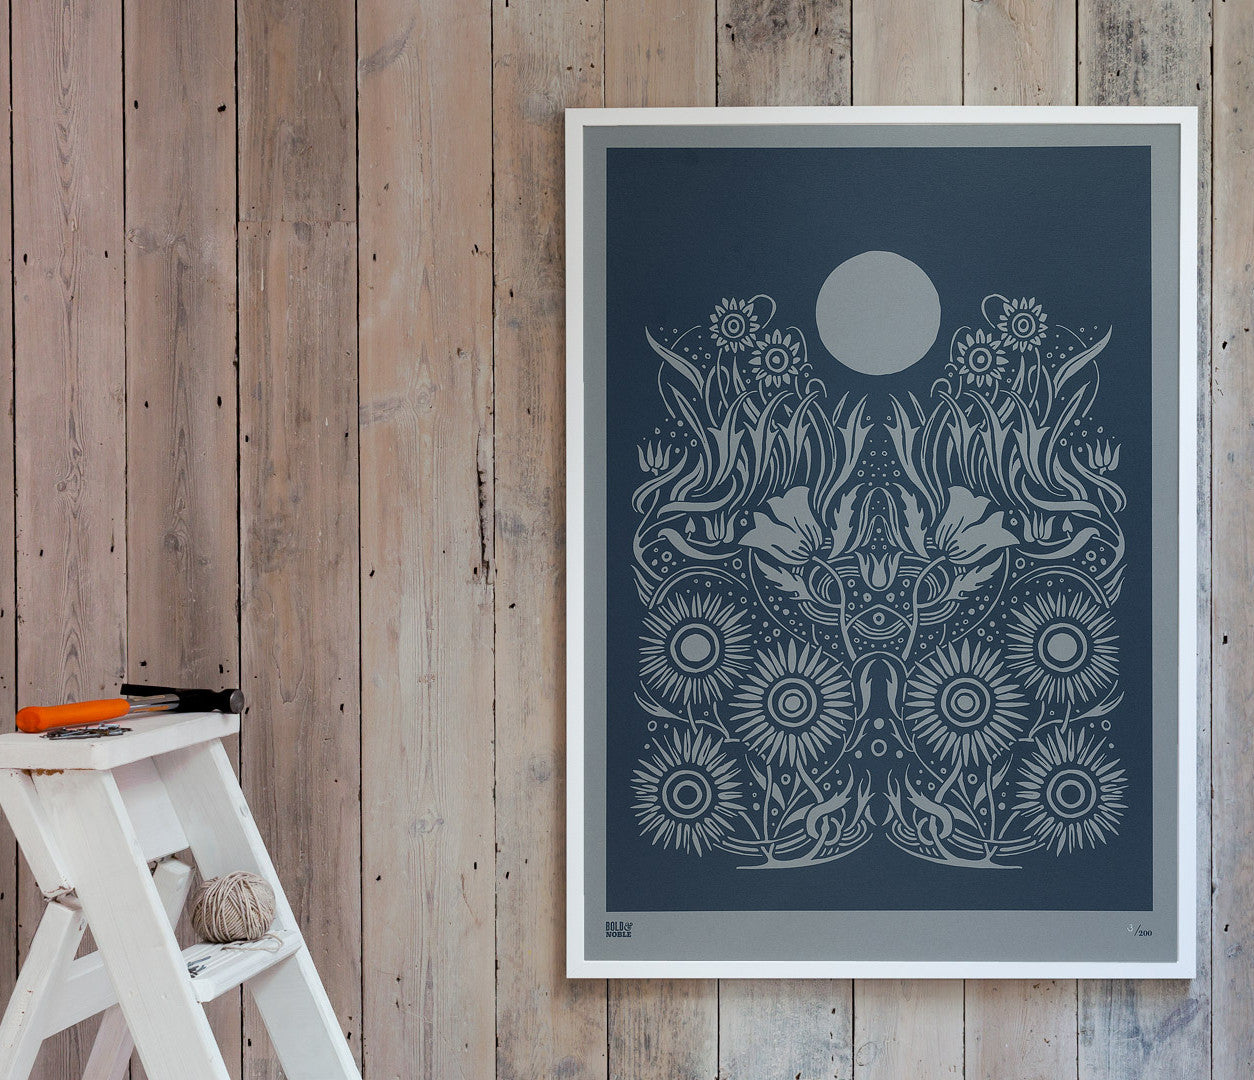 Pictures and Wall Art, Screen Printed Moonlight Limited Edition Print on grey card in slate grey